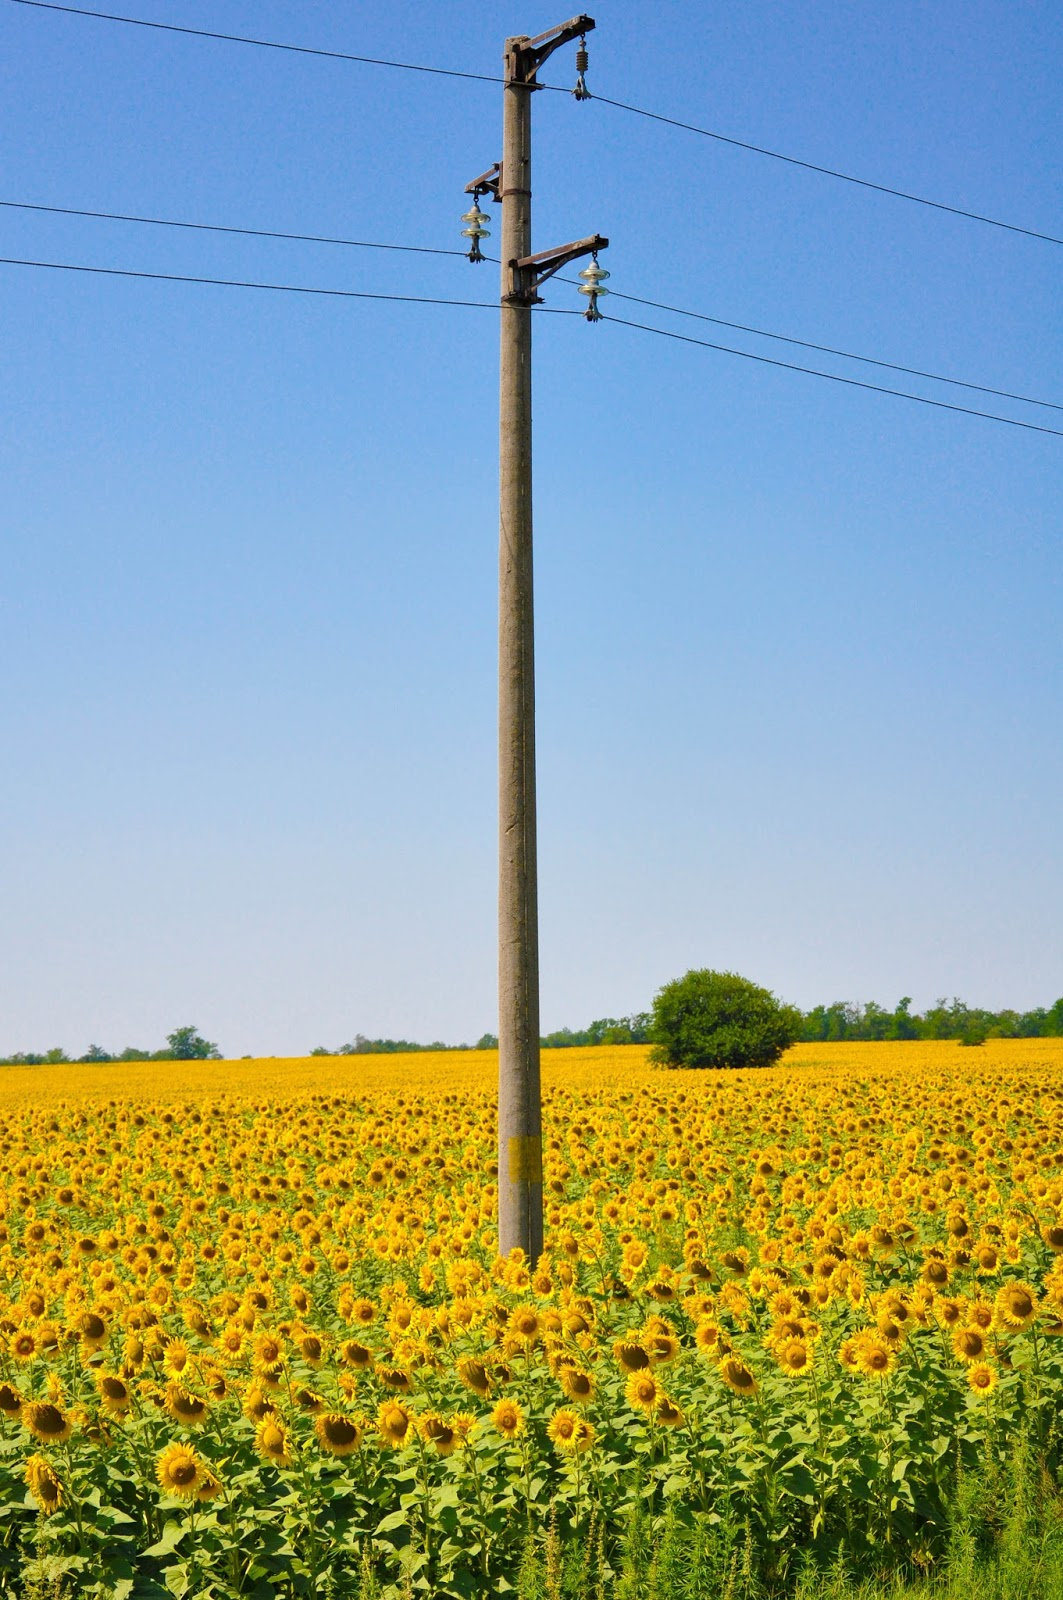 An electricity pilon in a Sunflower field, Varna, Bulgaria